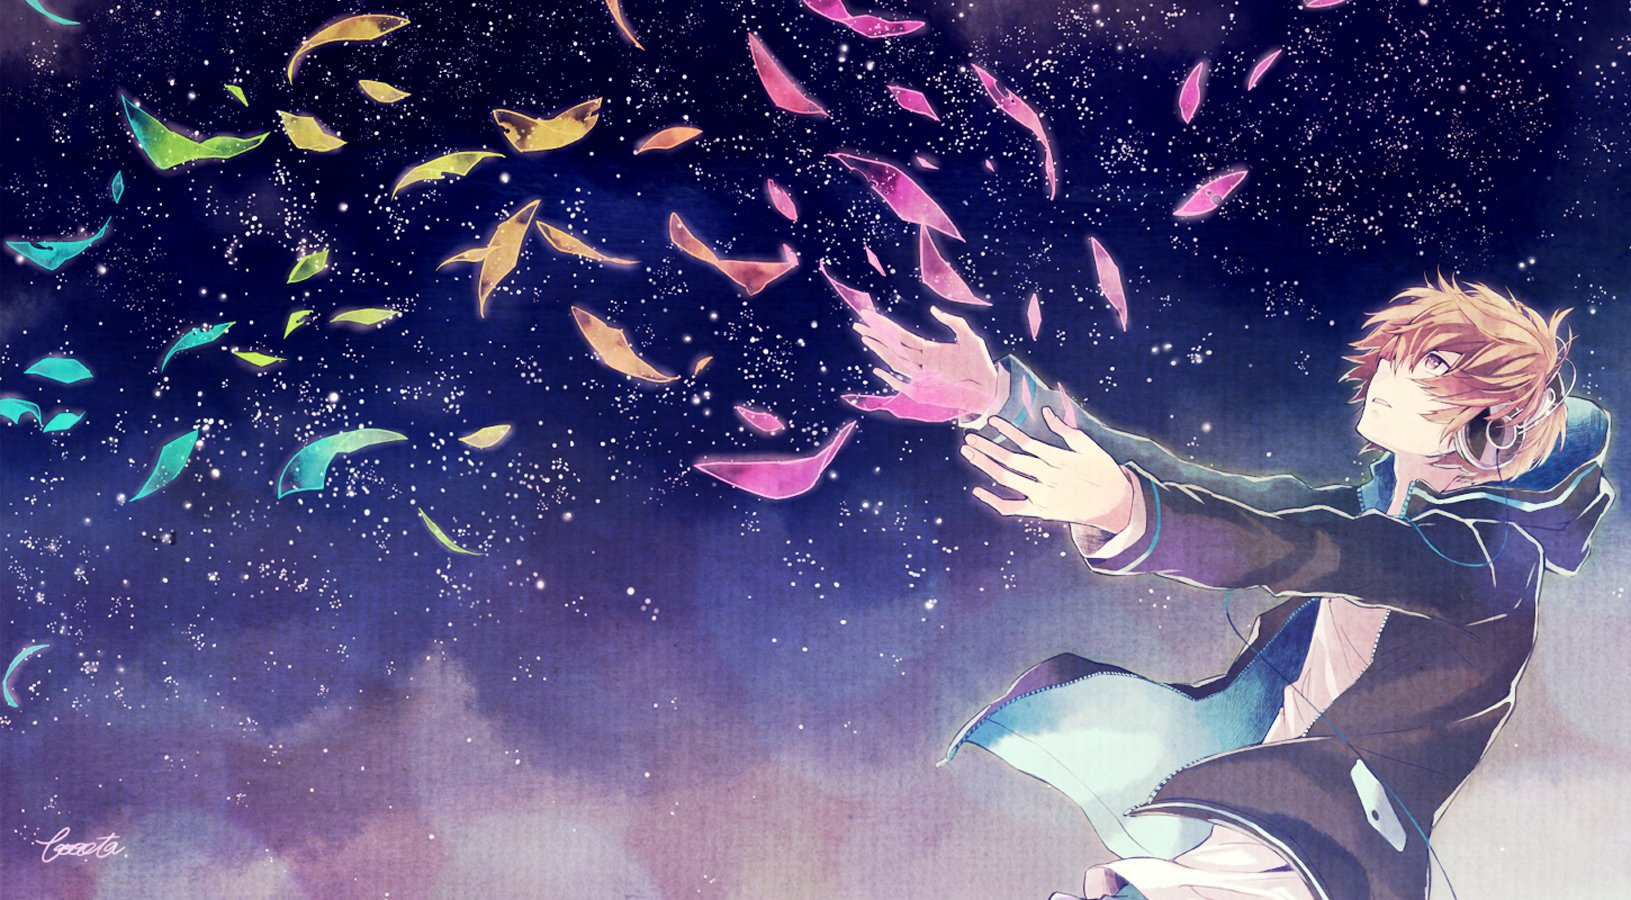 Anime Boy Sky Night Headphone Music Wallpaper